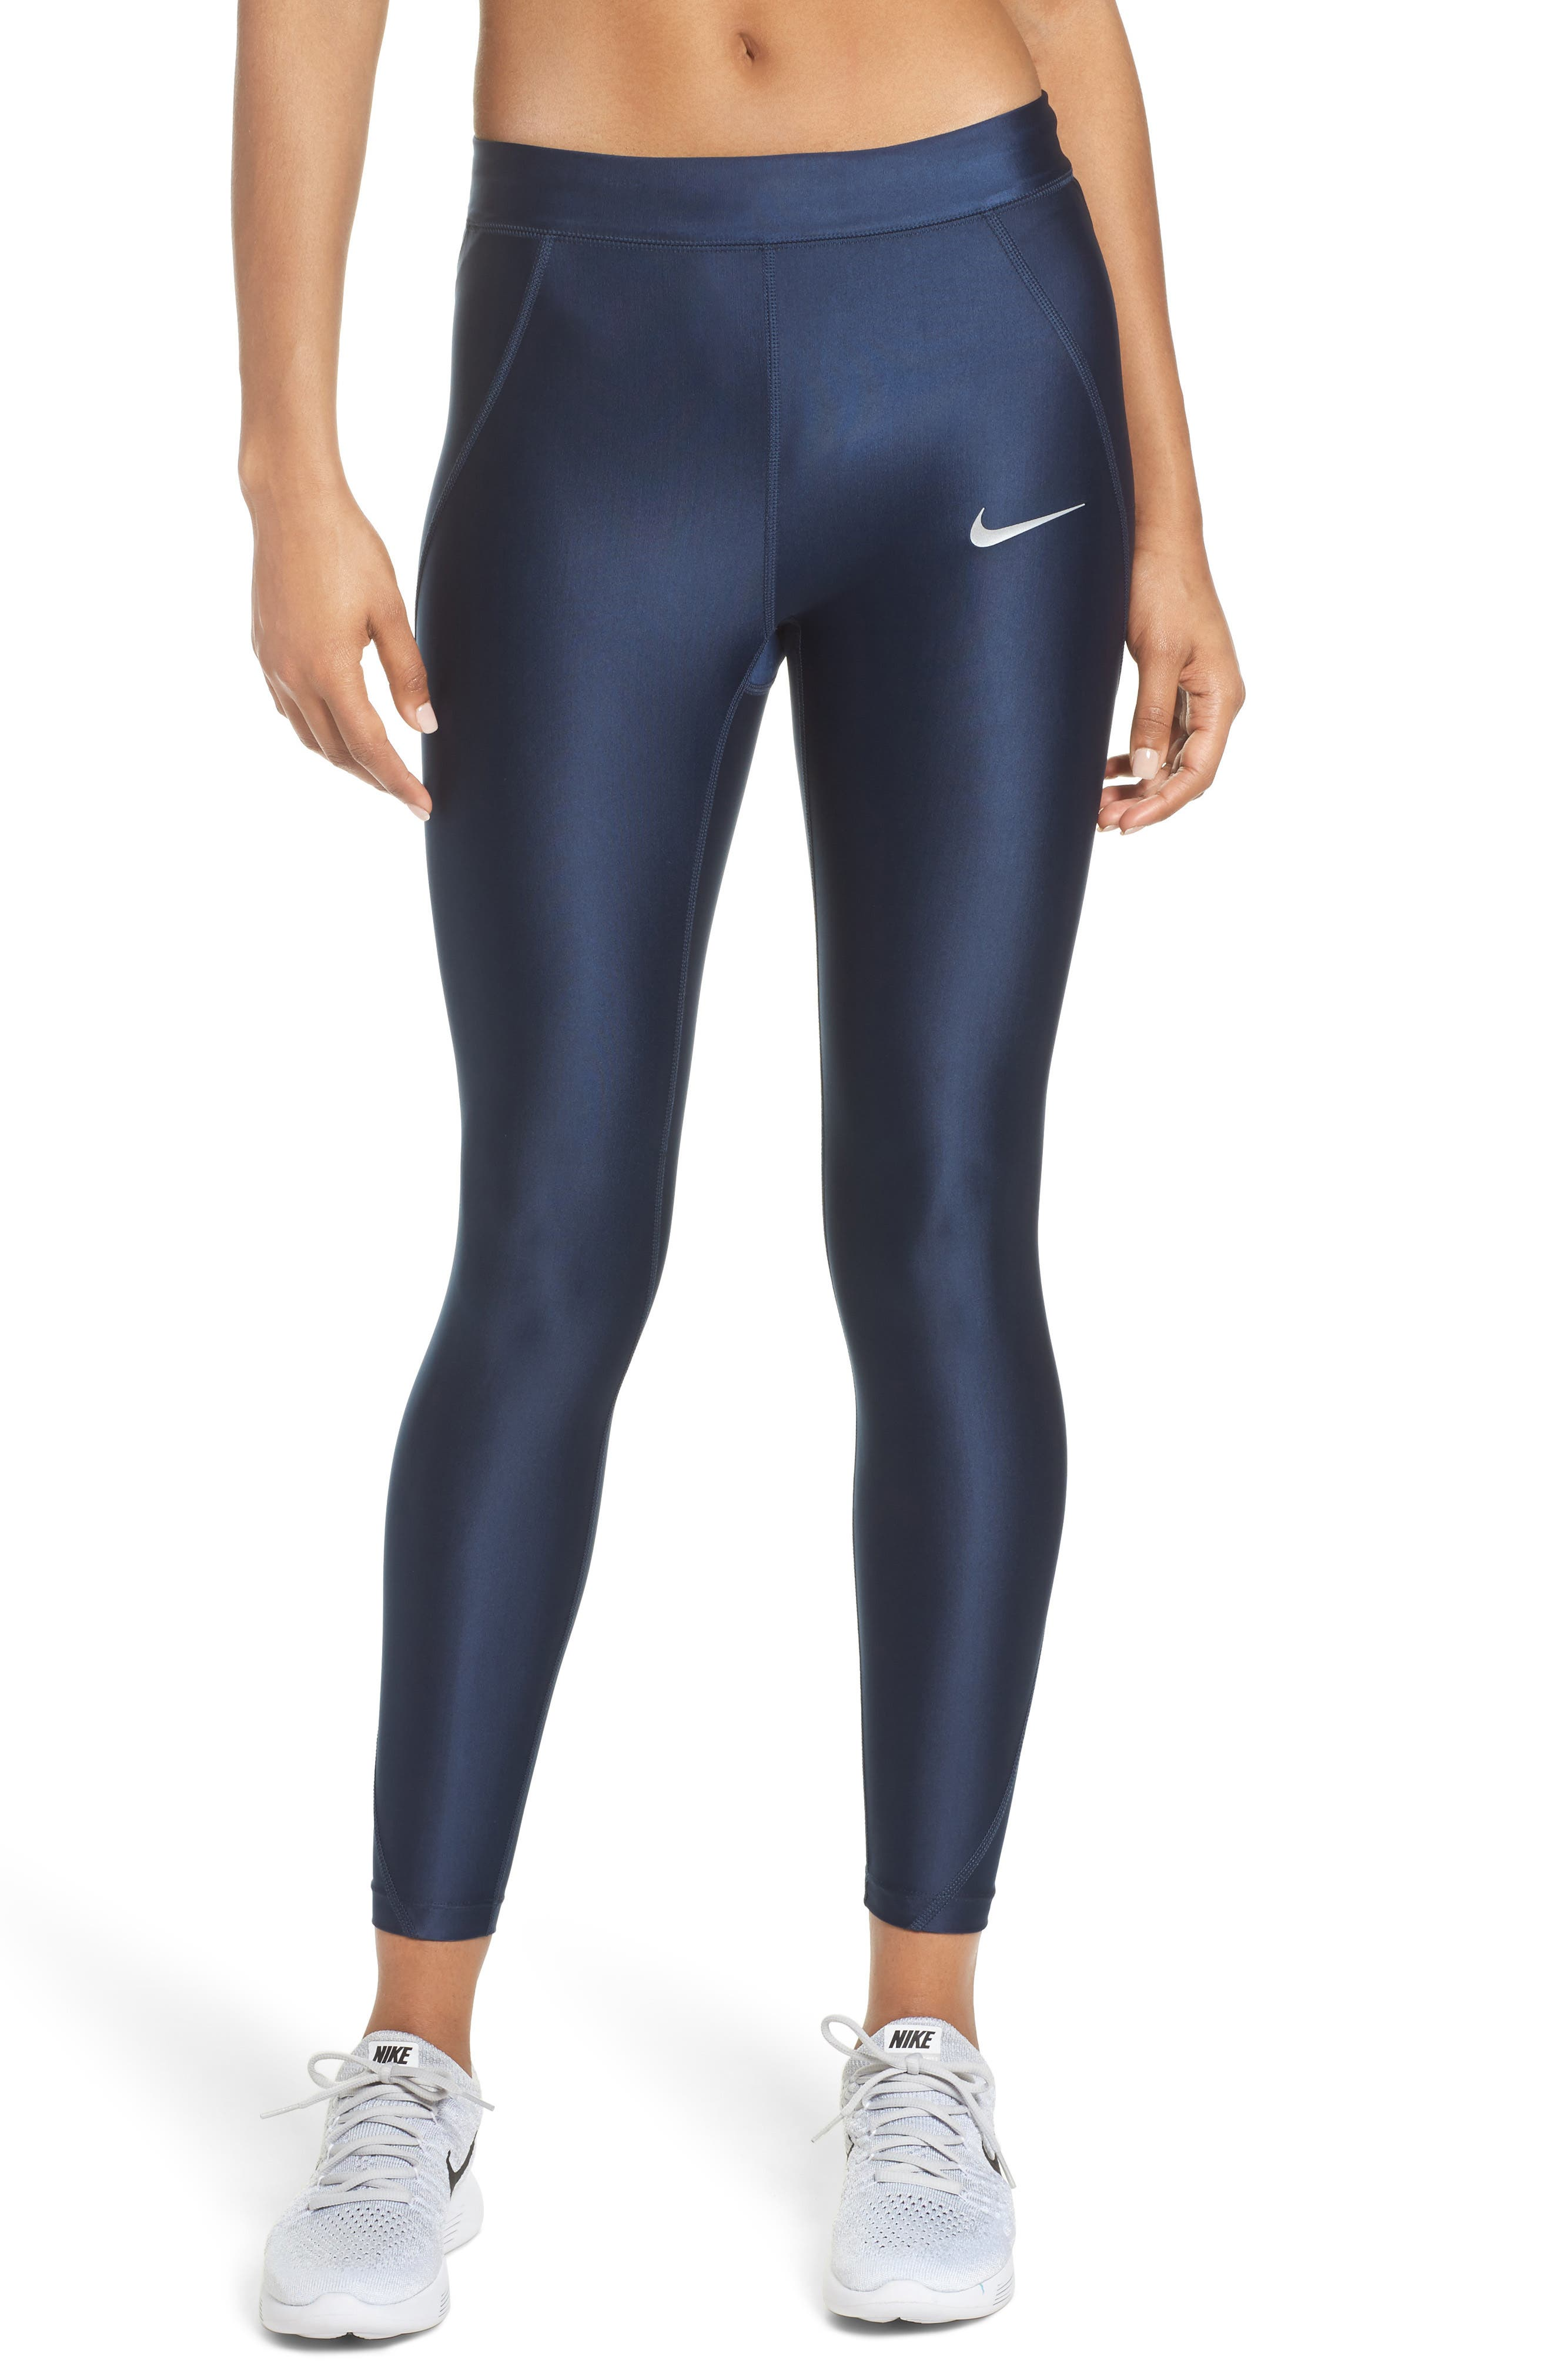 Nike Power Speed 7/8 Running Tights